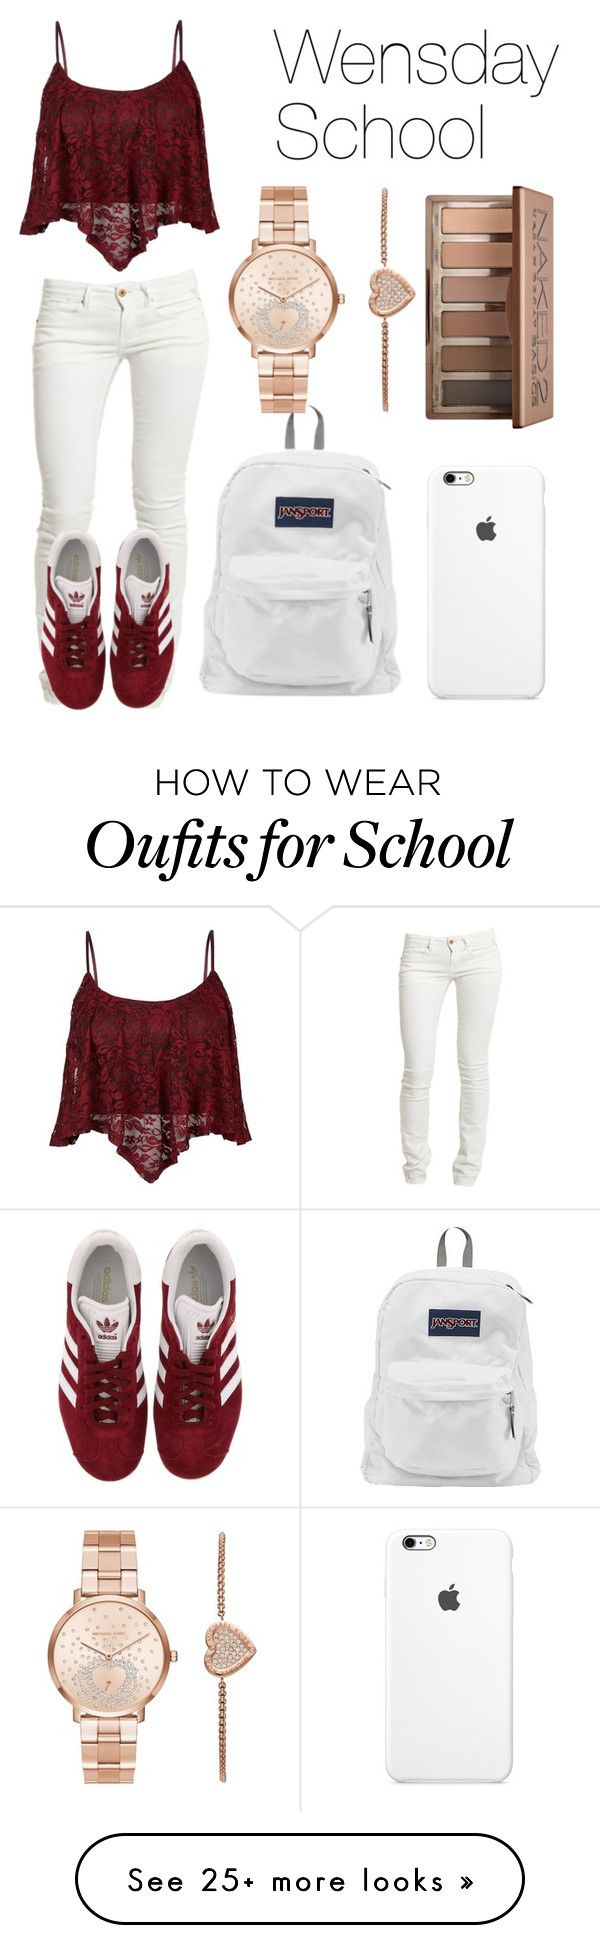 """Wednesday School"" by kellyaguilera on Polyvore featuring Replay, adidas, JanSport, Michael Kors, Urban Decay, school, teen, copycat and causual"